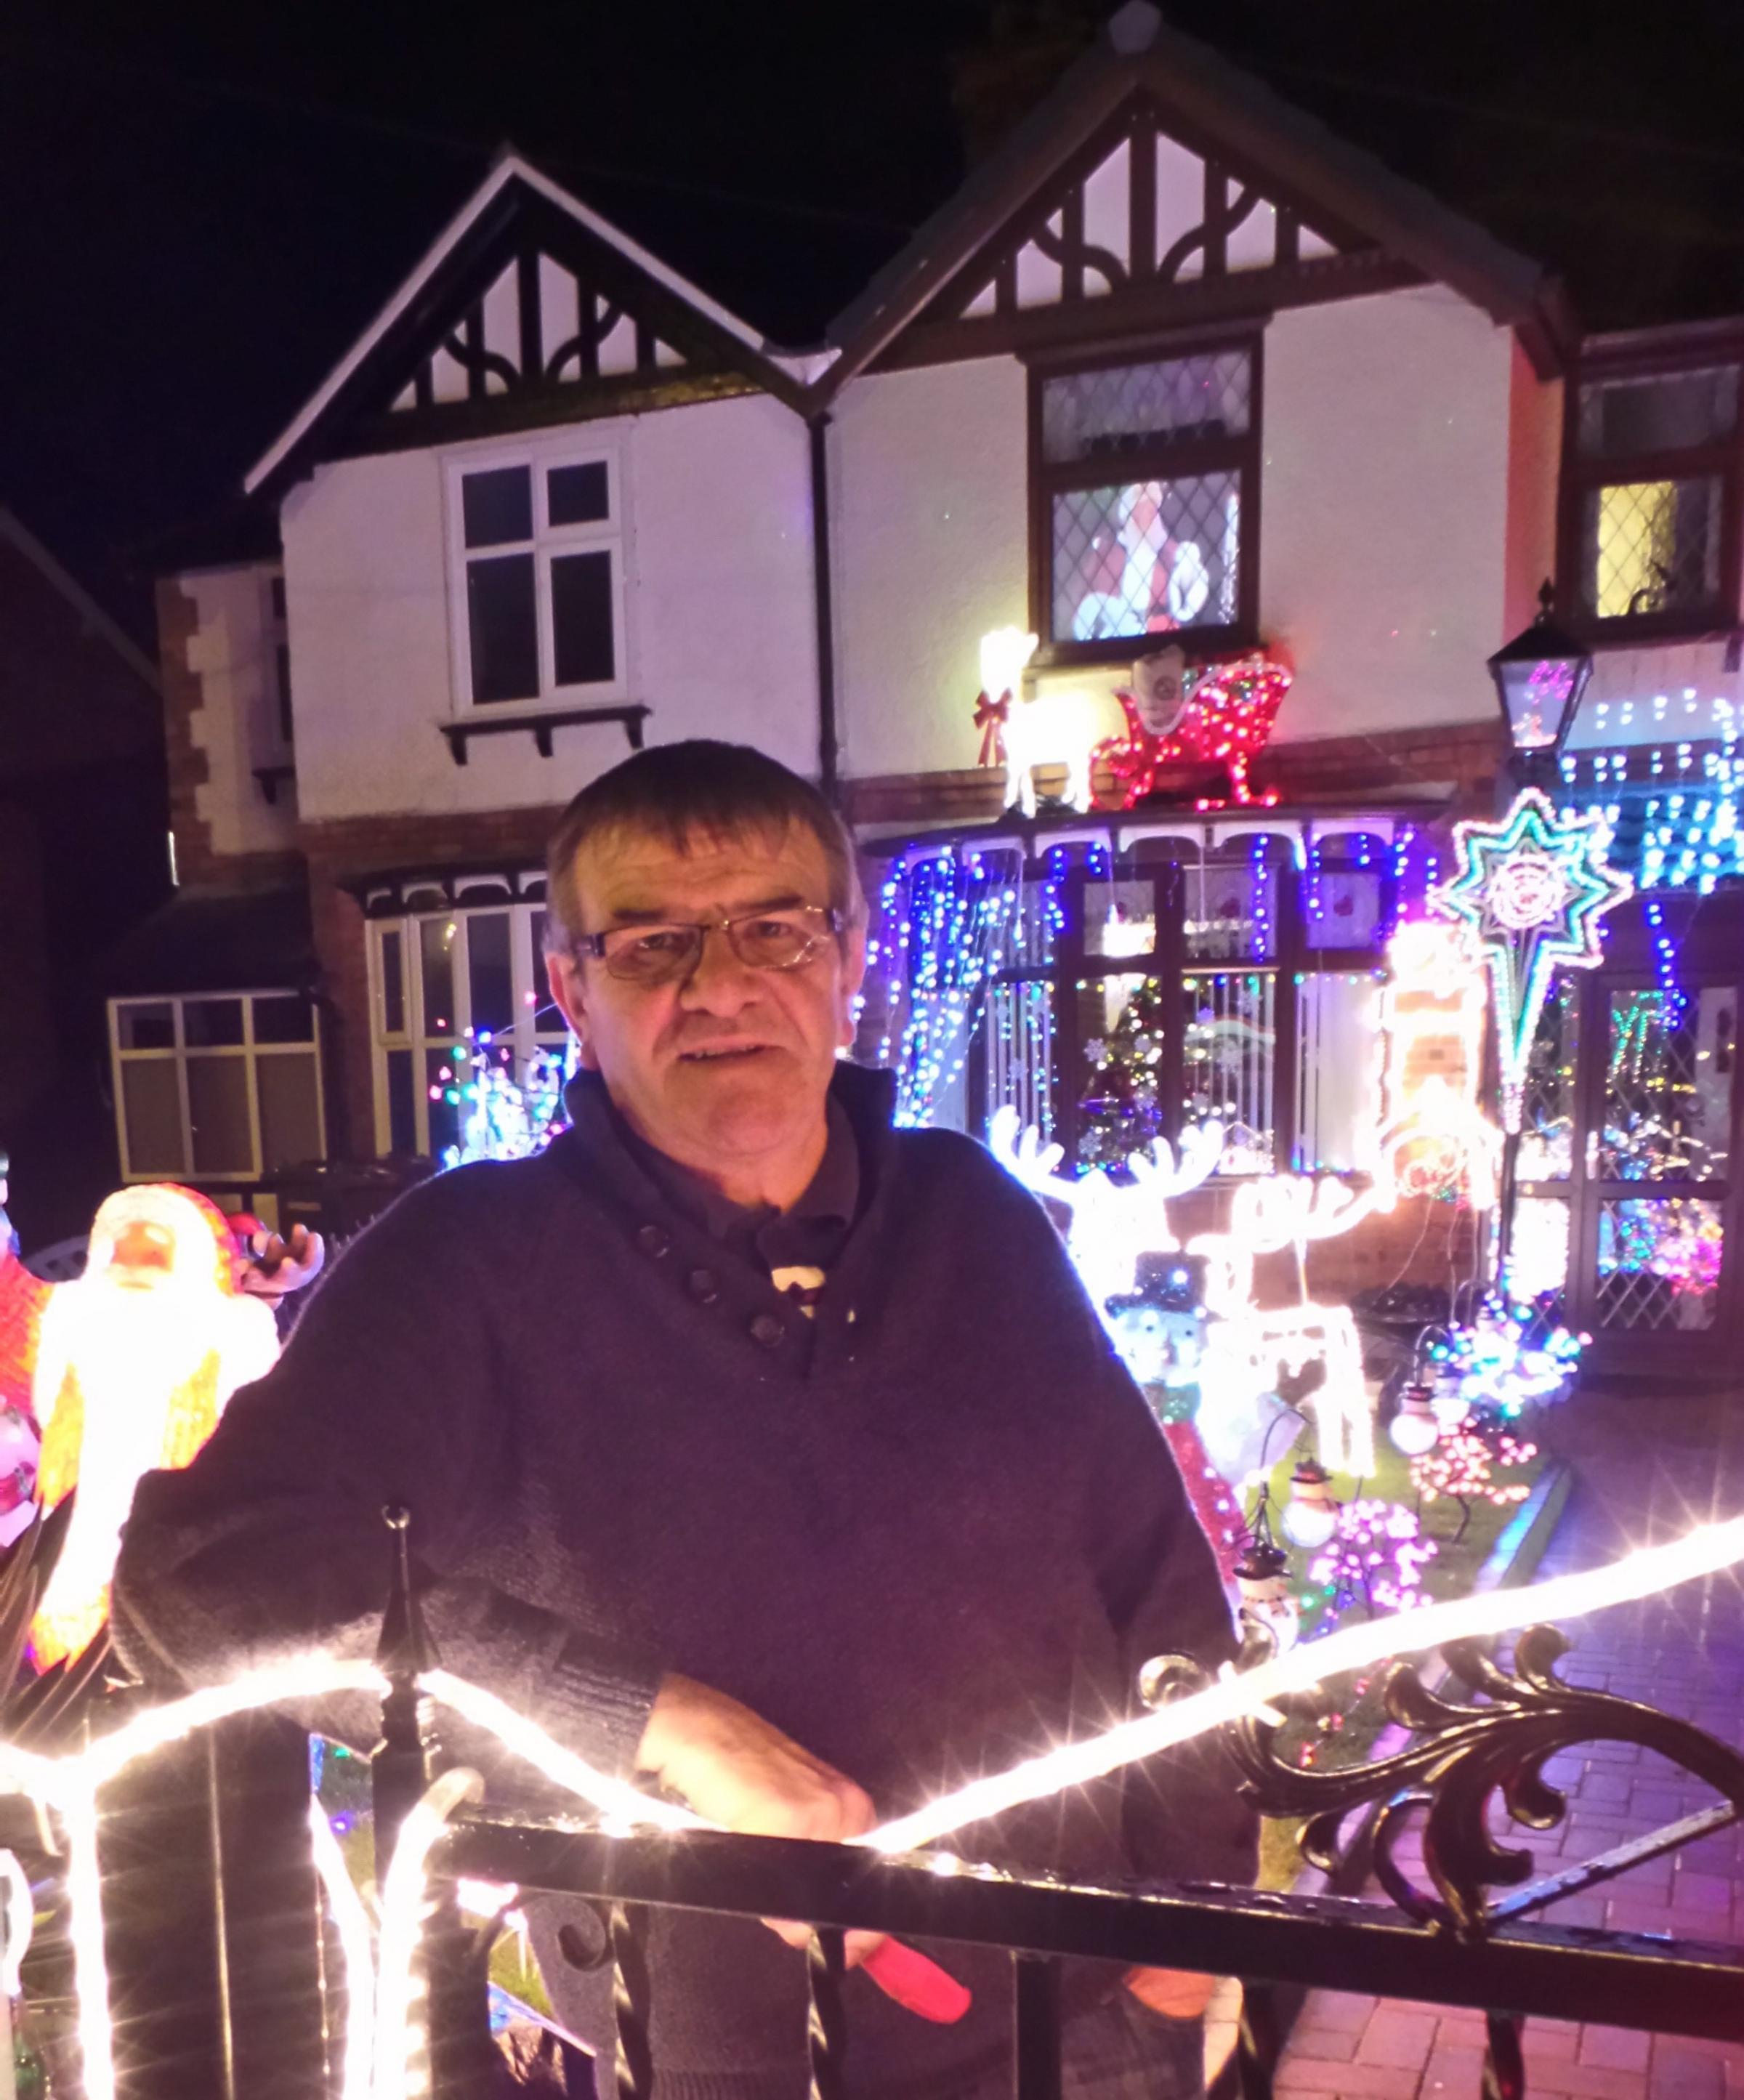 Grandad David Robinson transforms his home on Station Road in Winsford into a magical winter wonderland to raise funds for St Luke's Hospice